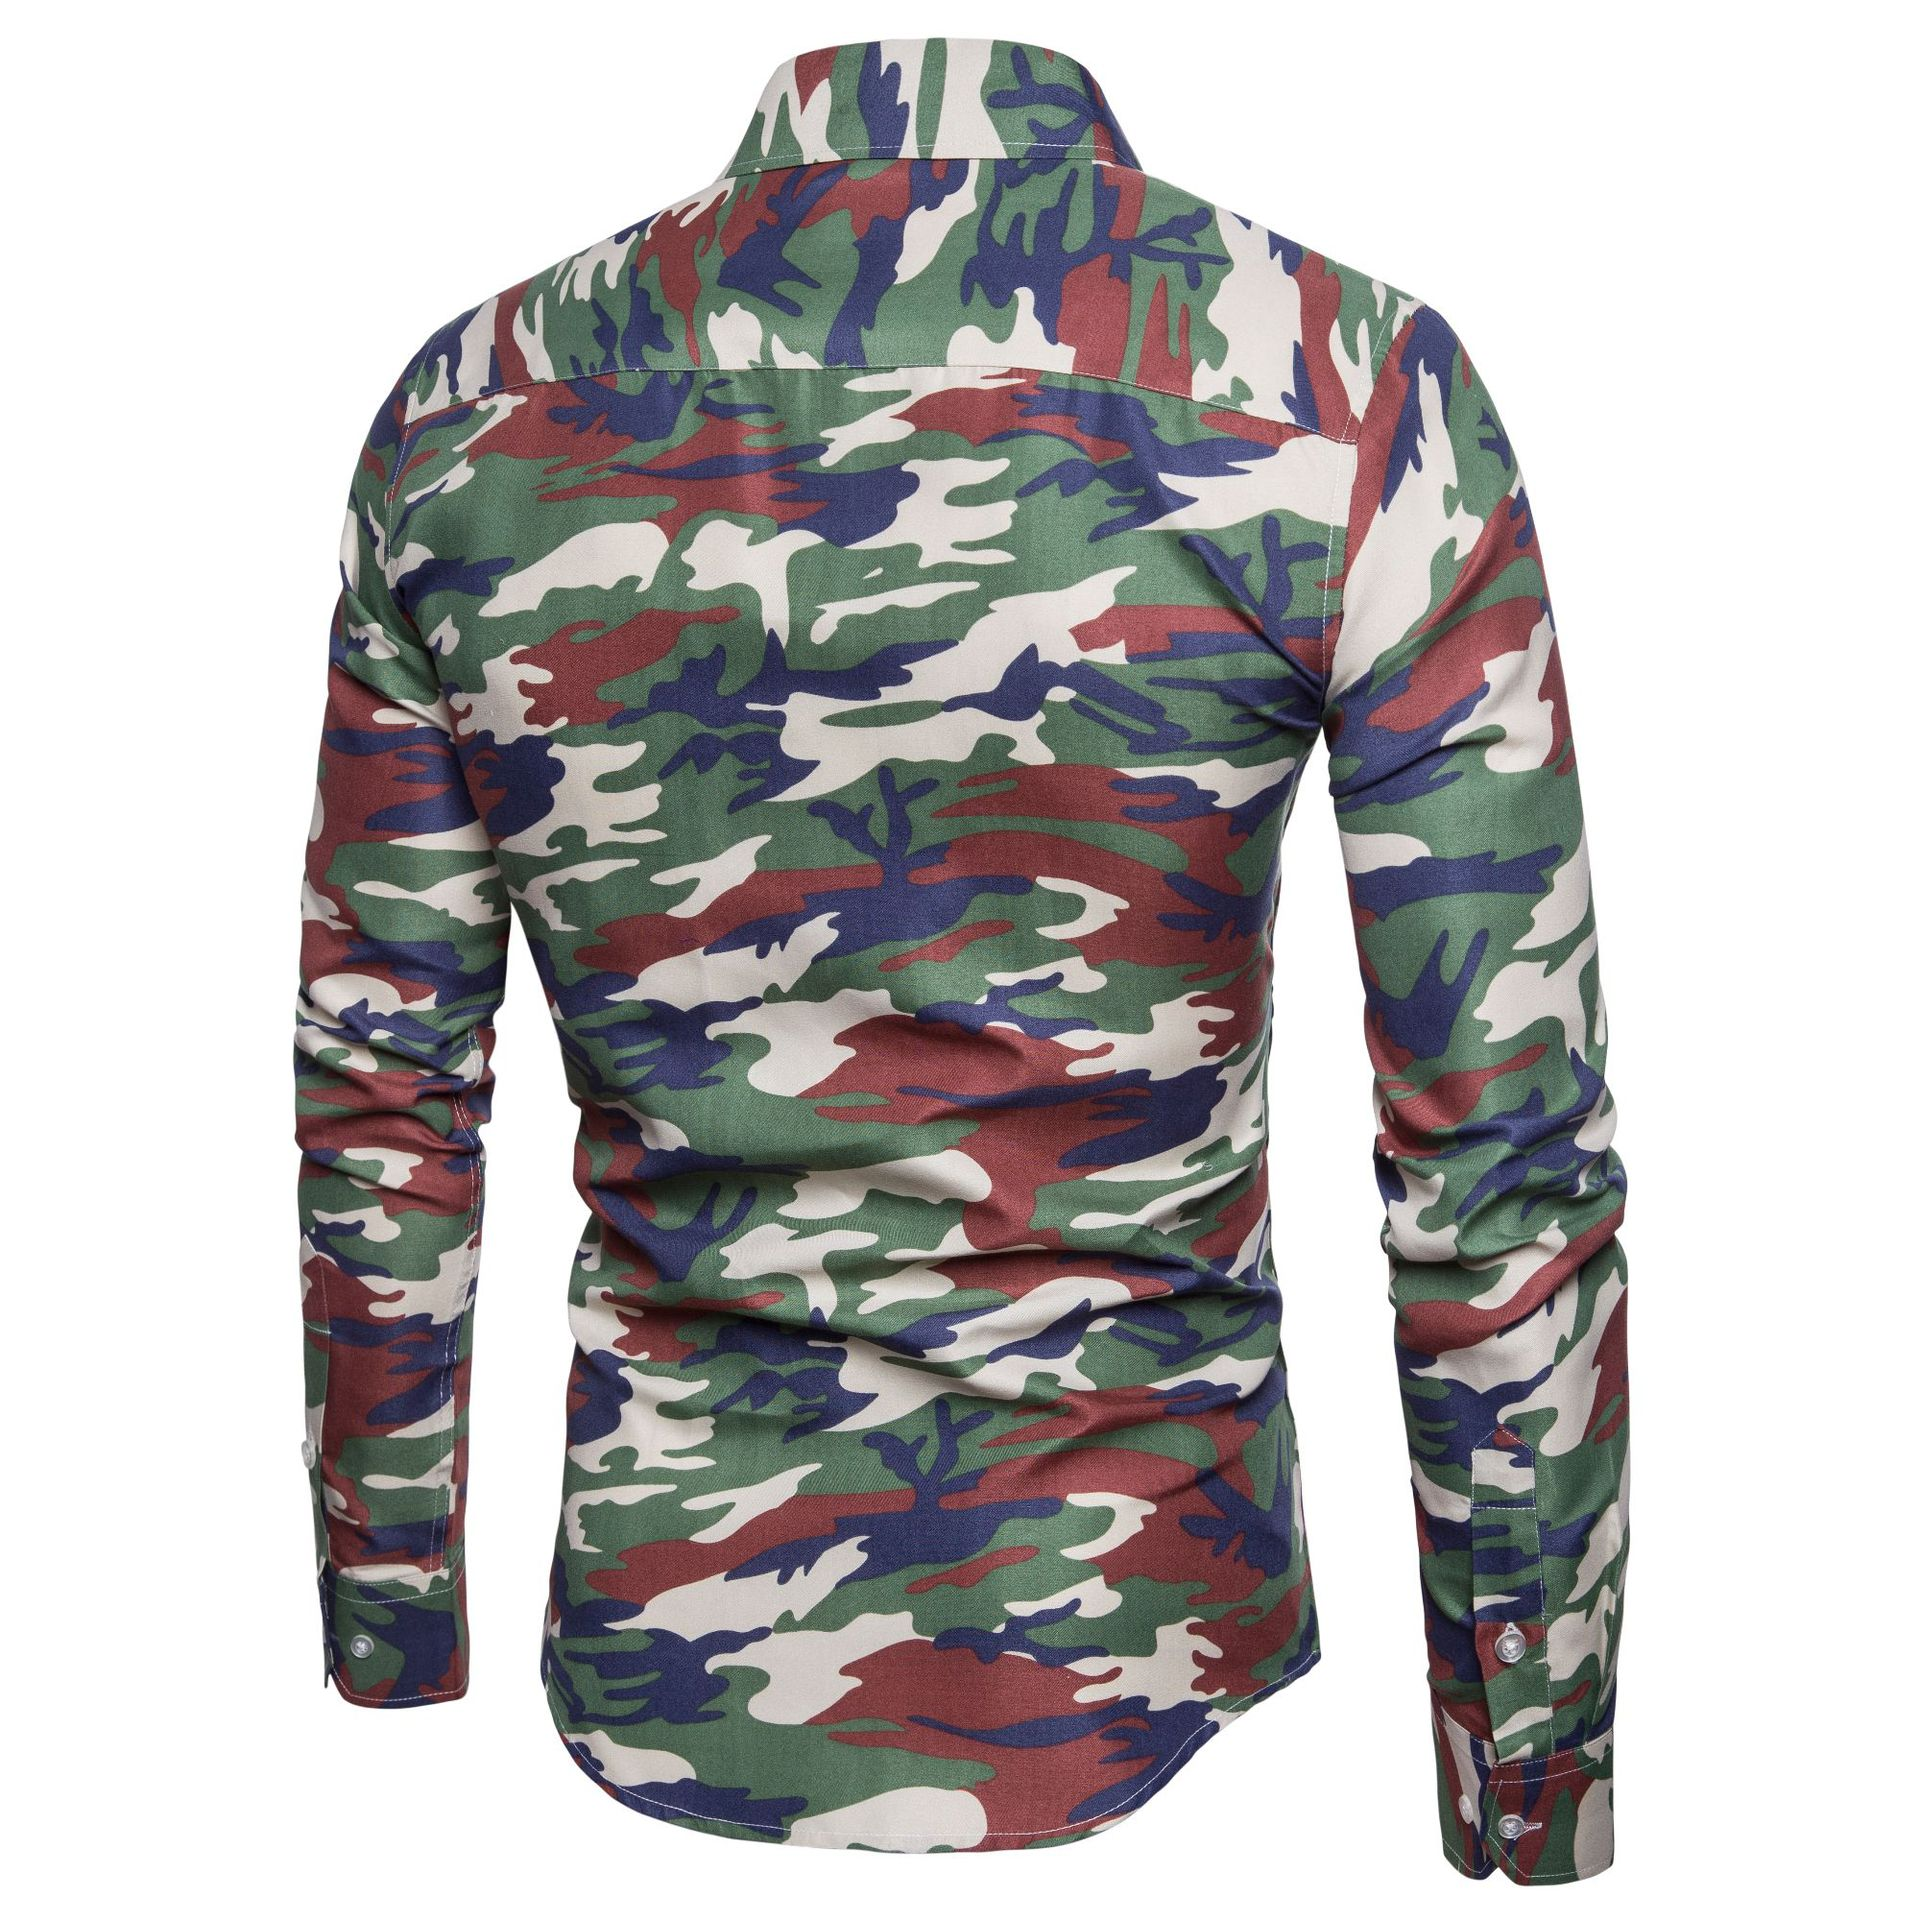 2cc8bedcb Dropshipping Men Shirt 2019 Brand Camouflage Printed Long Sleeve Dress Shirt  Slim Fit Camisa Masculina Casual Men's Clothing-in Casual Shirts from Men's  ...